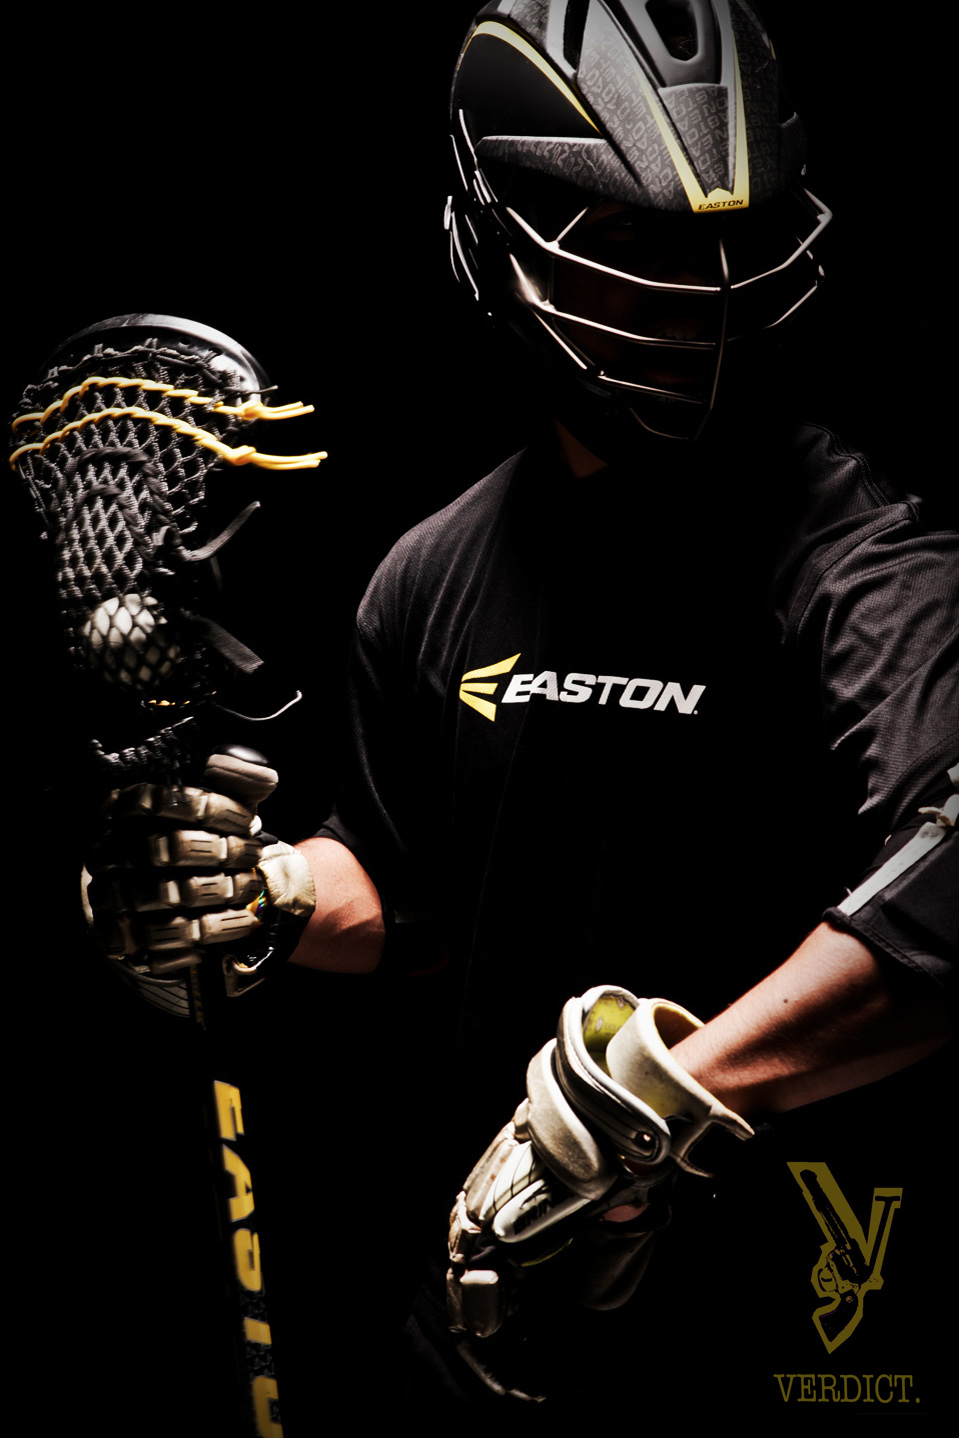 lacrosse wallpaper wallpapers - photo #30